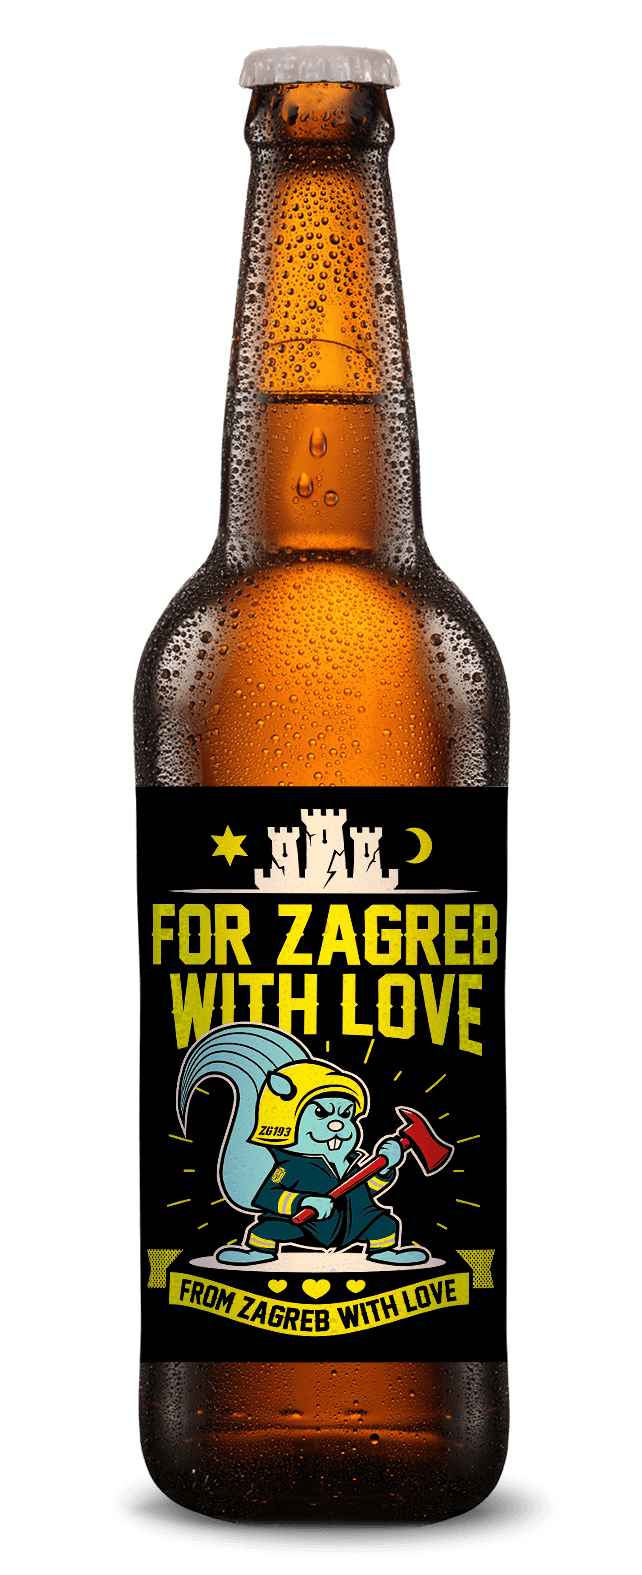 For Zagreb with love